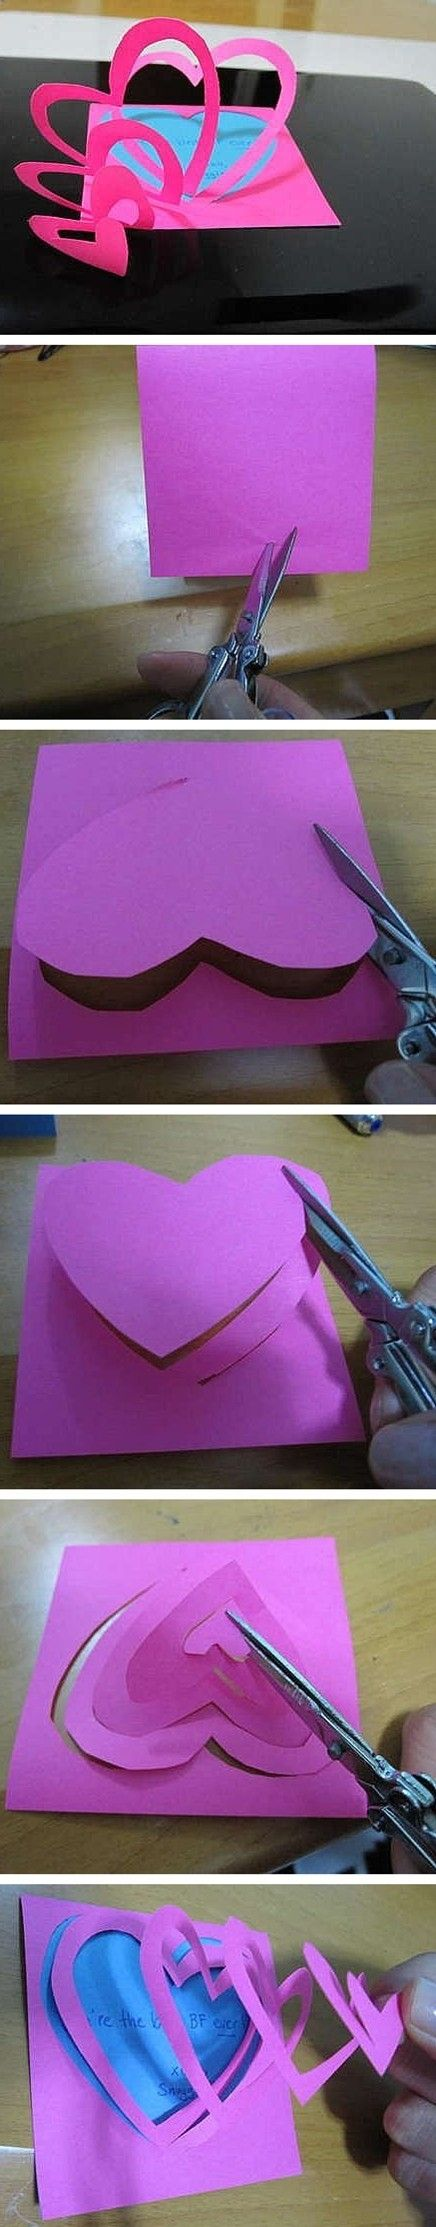 Spiral cut pop out heart card. This is pretty cool.